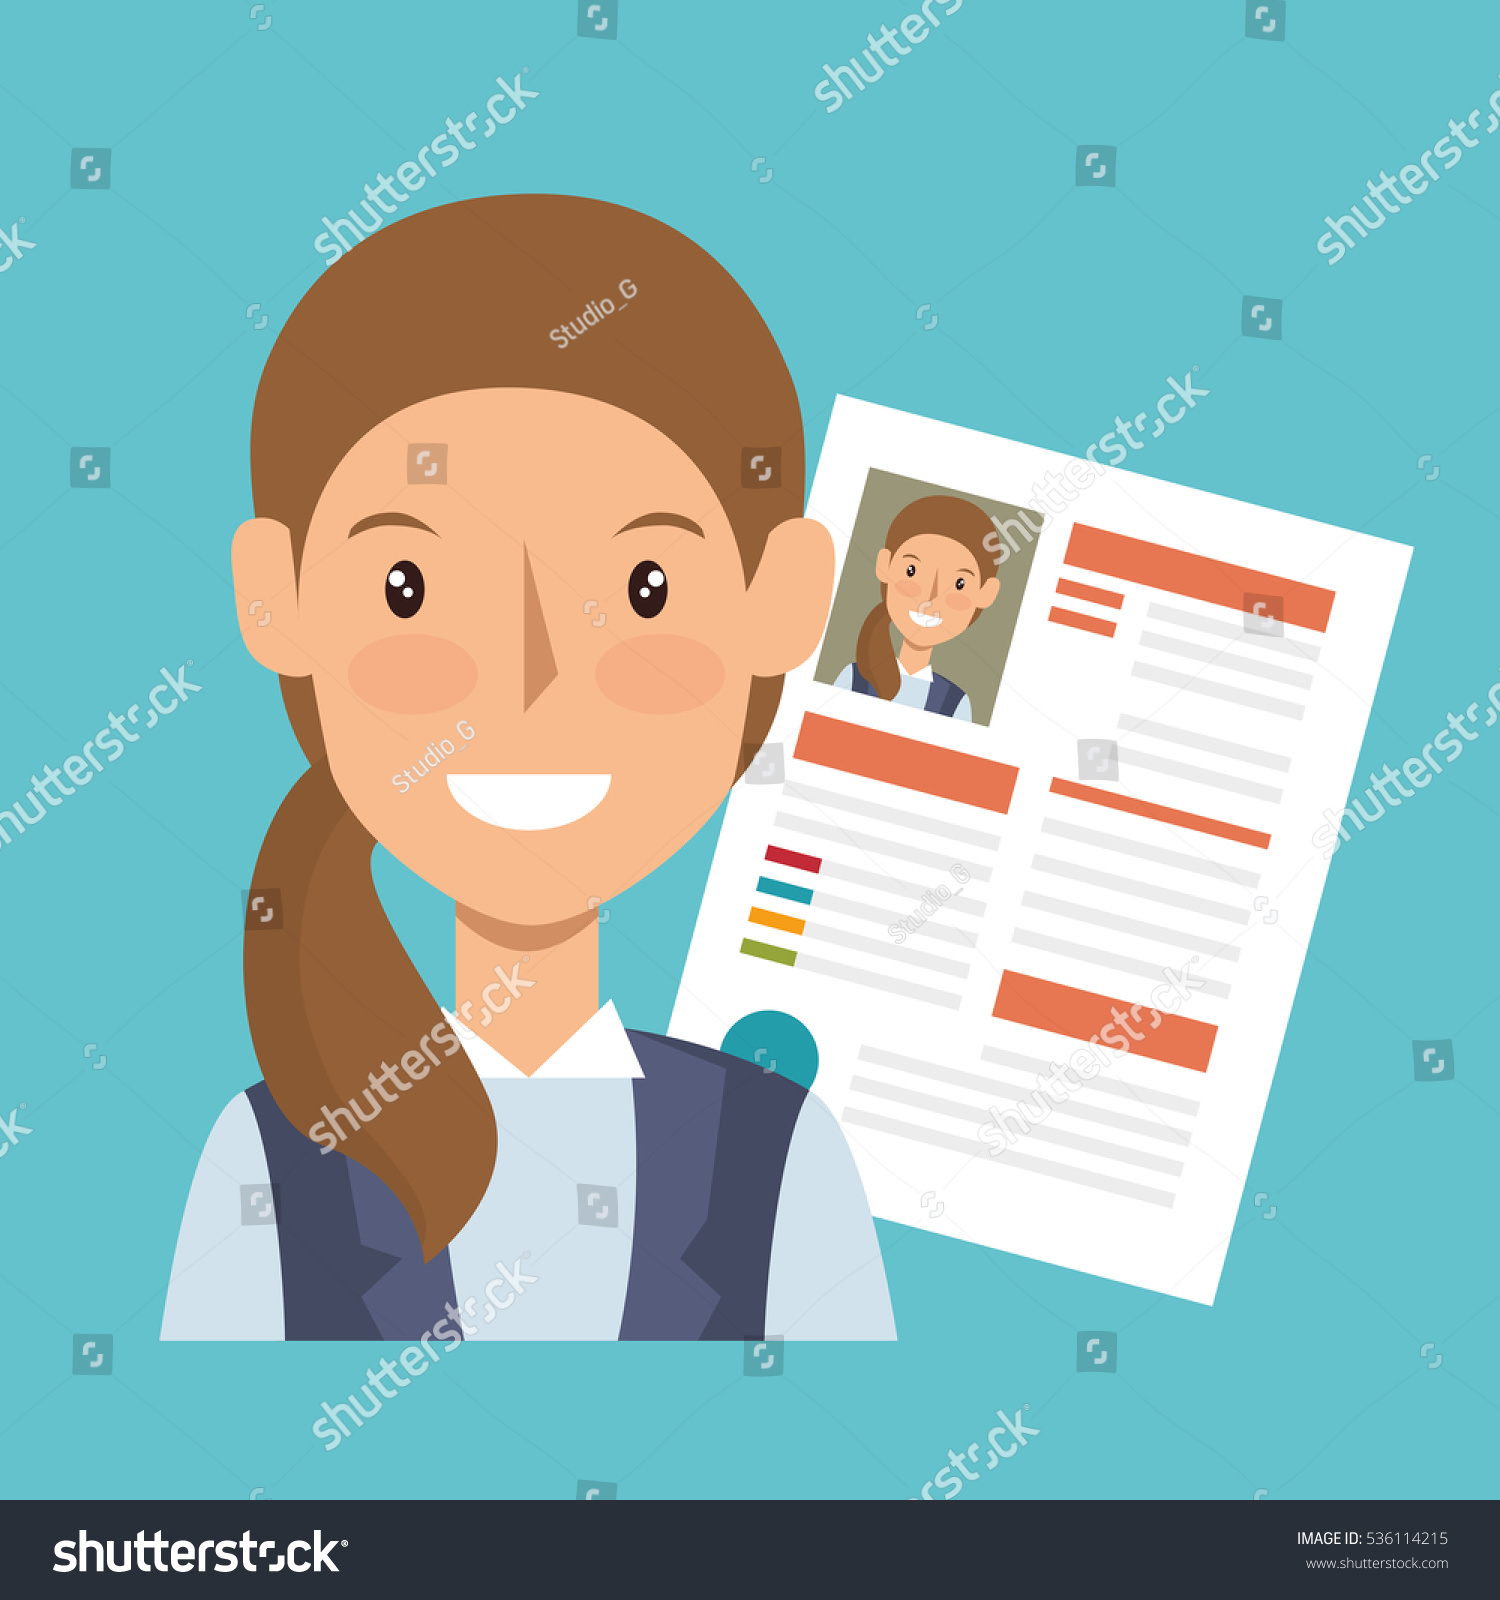 businesswoman character avatar cv icon image vectorielle 536114215